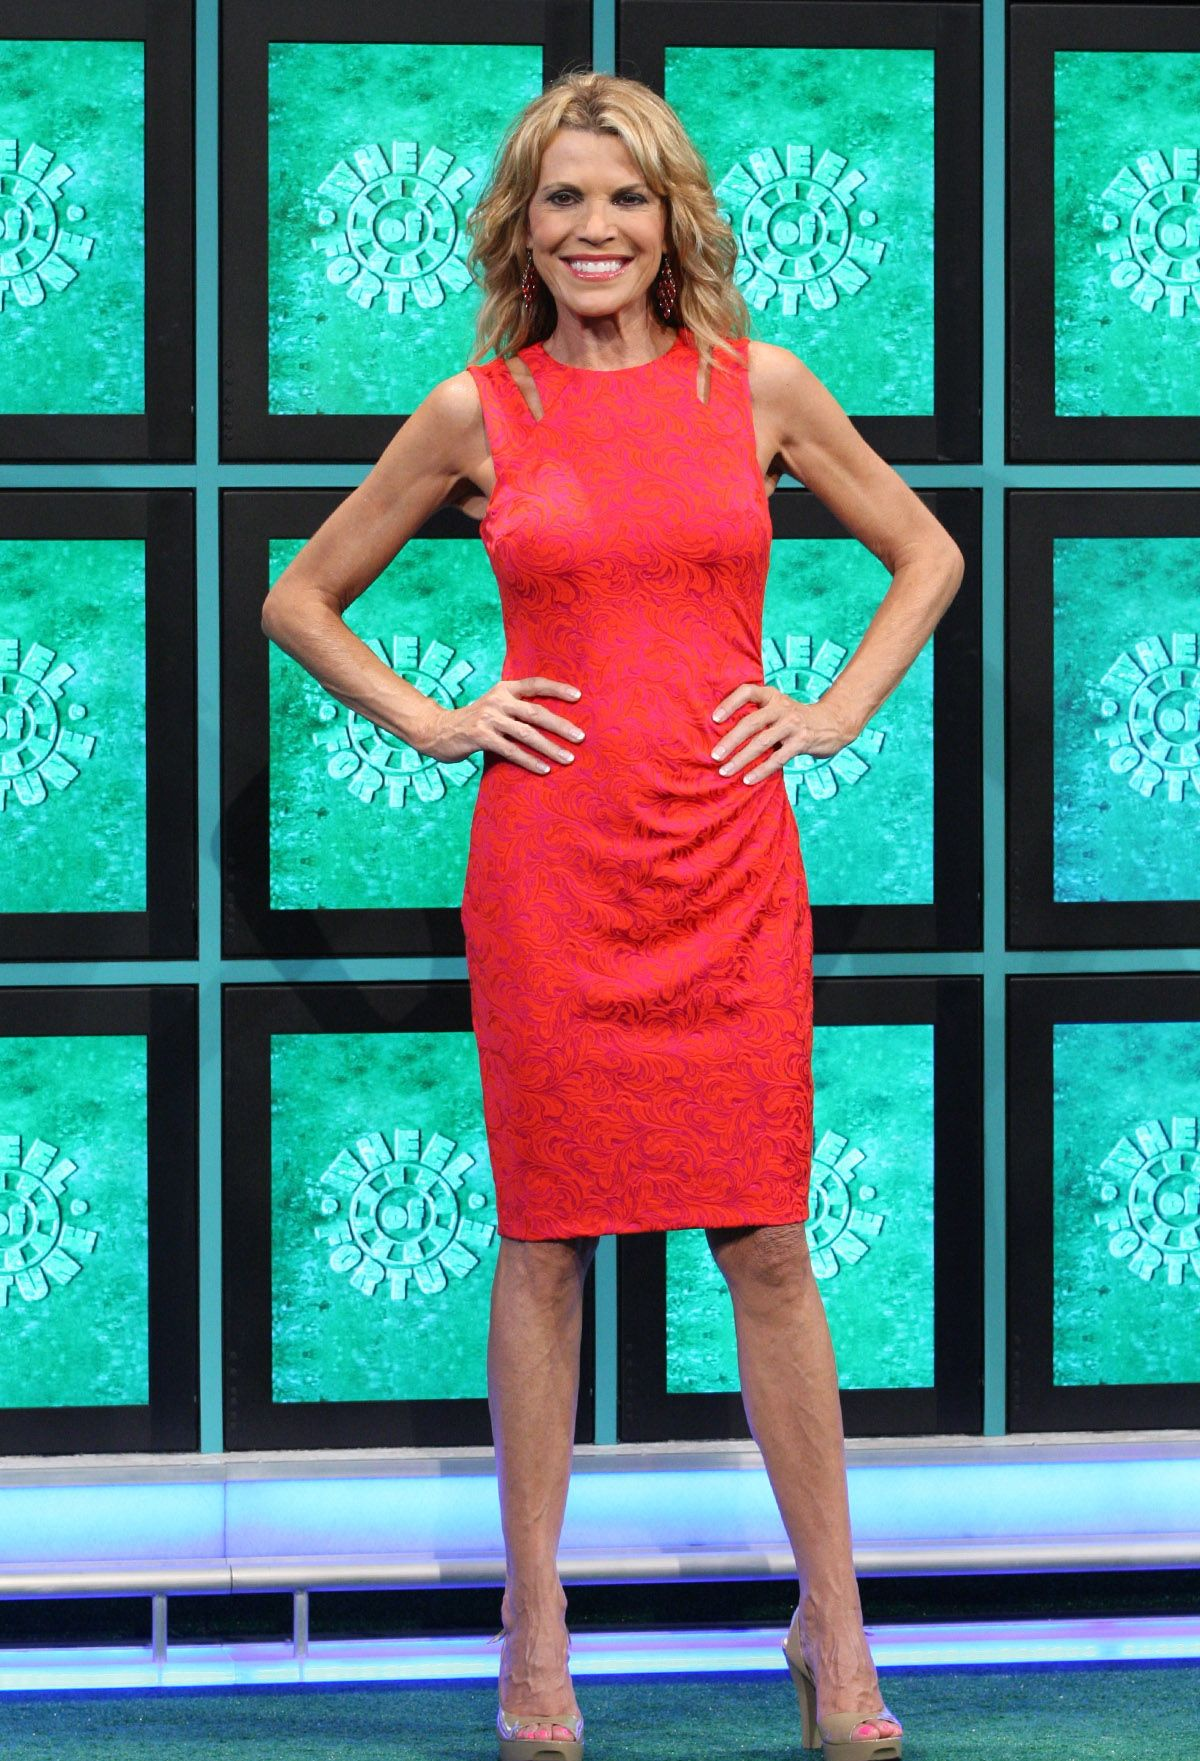 Vanna White looking awesome in our Silver Sleeveless Jacquard ...